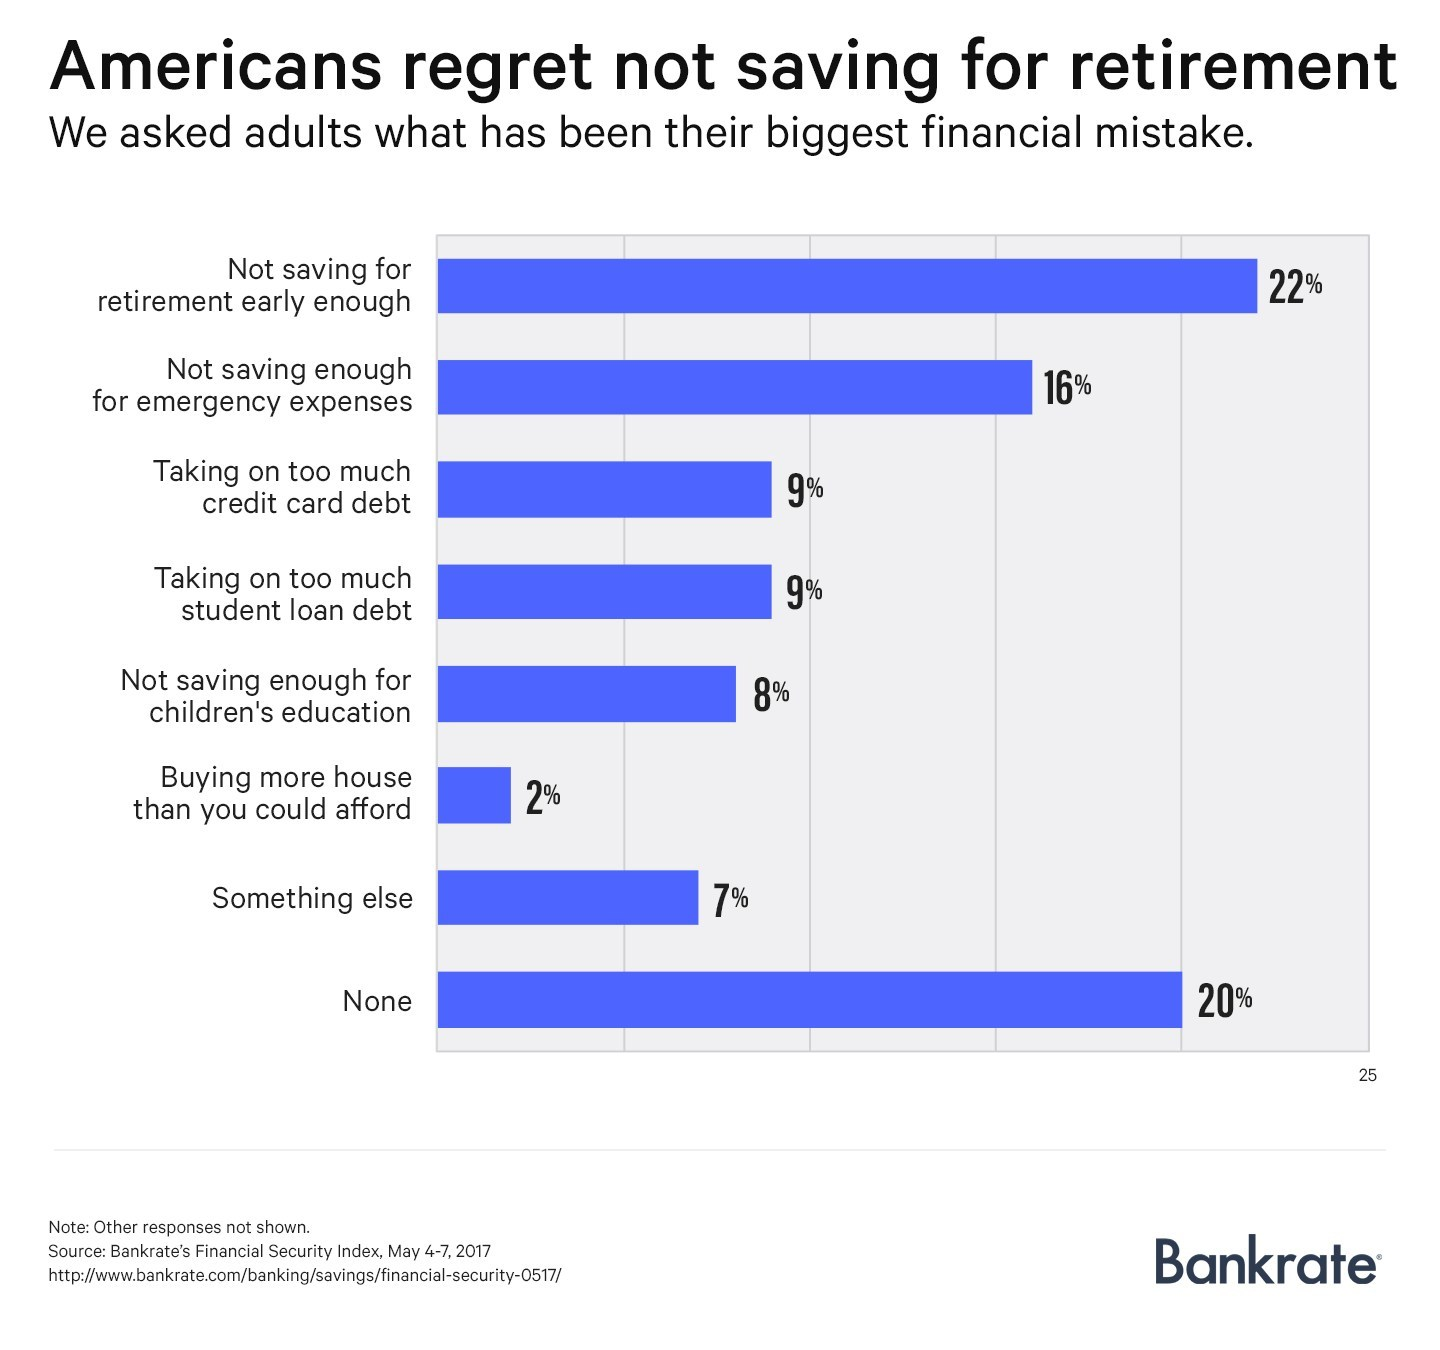 Nearly 3-in-4 U.S. adults have financial regrets, according to a new Bankrate.com report